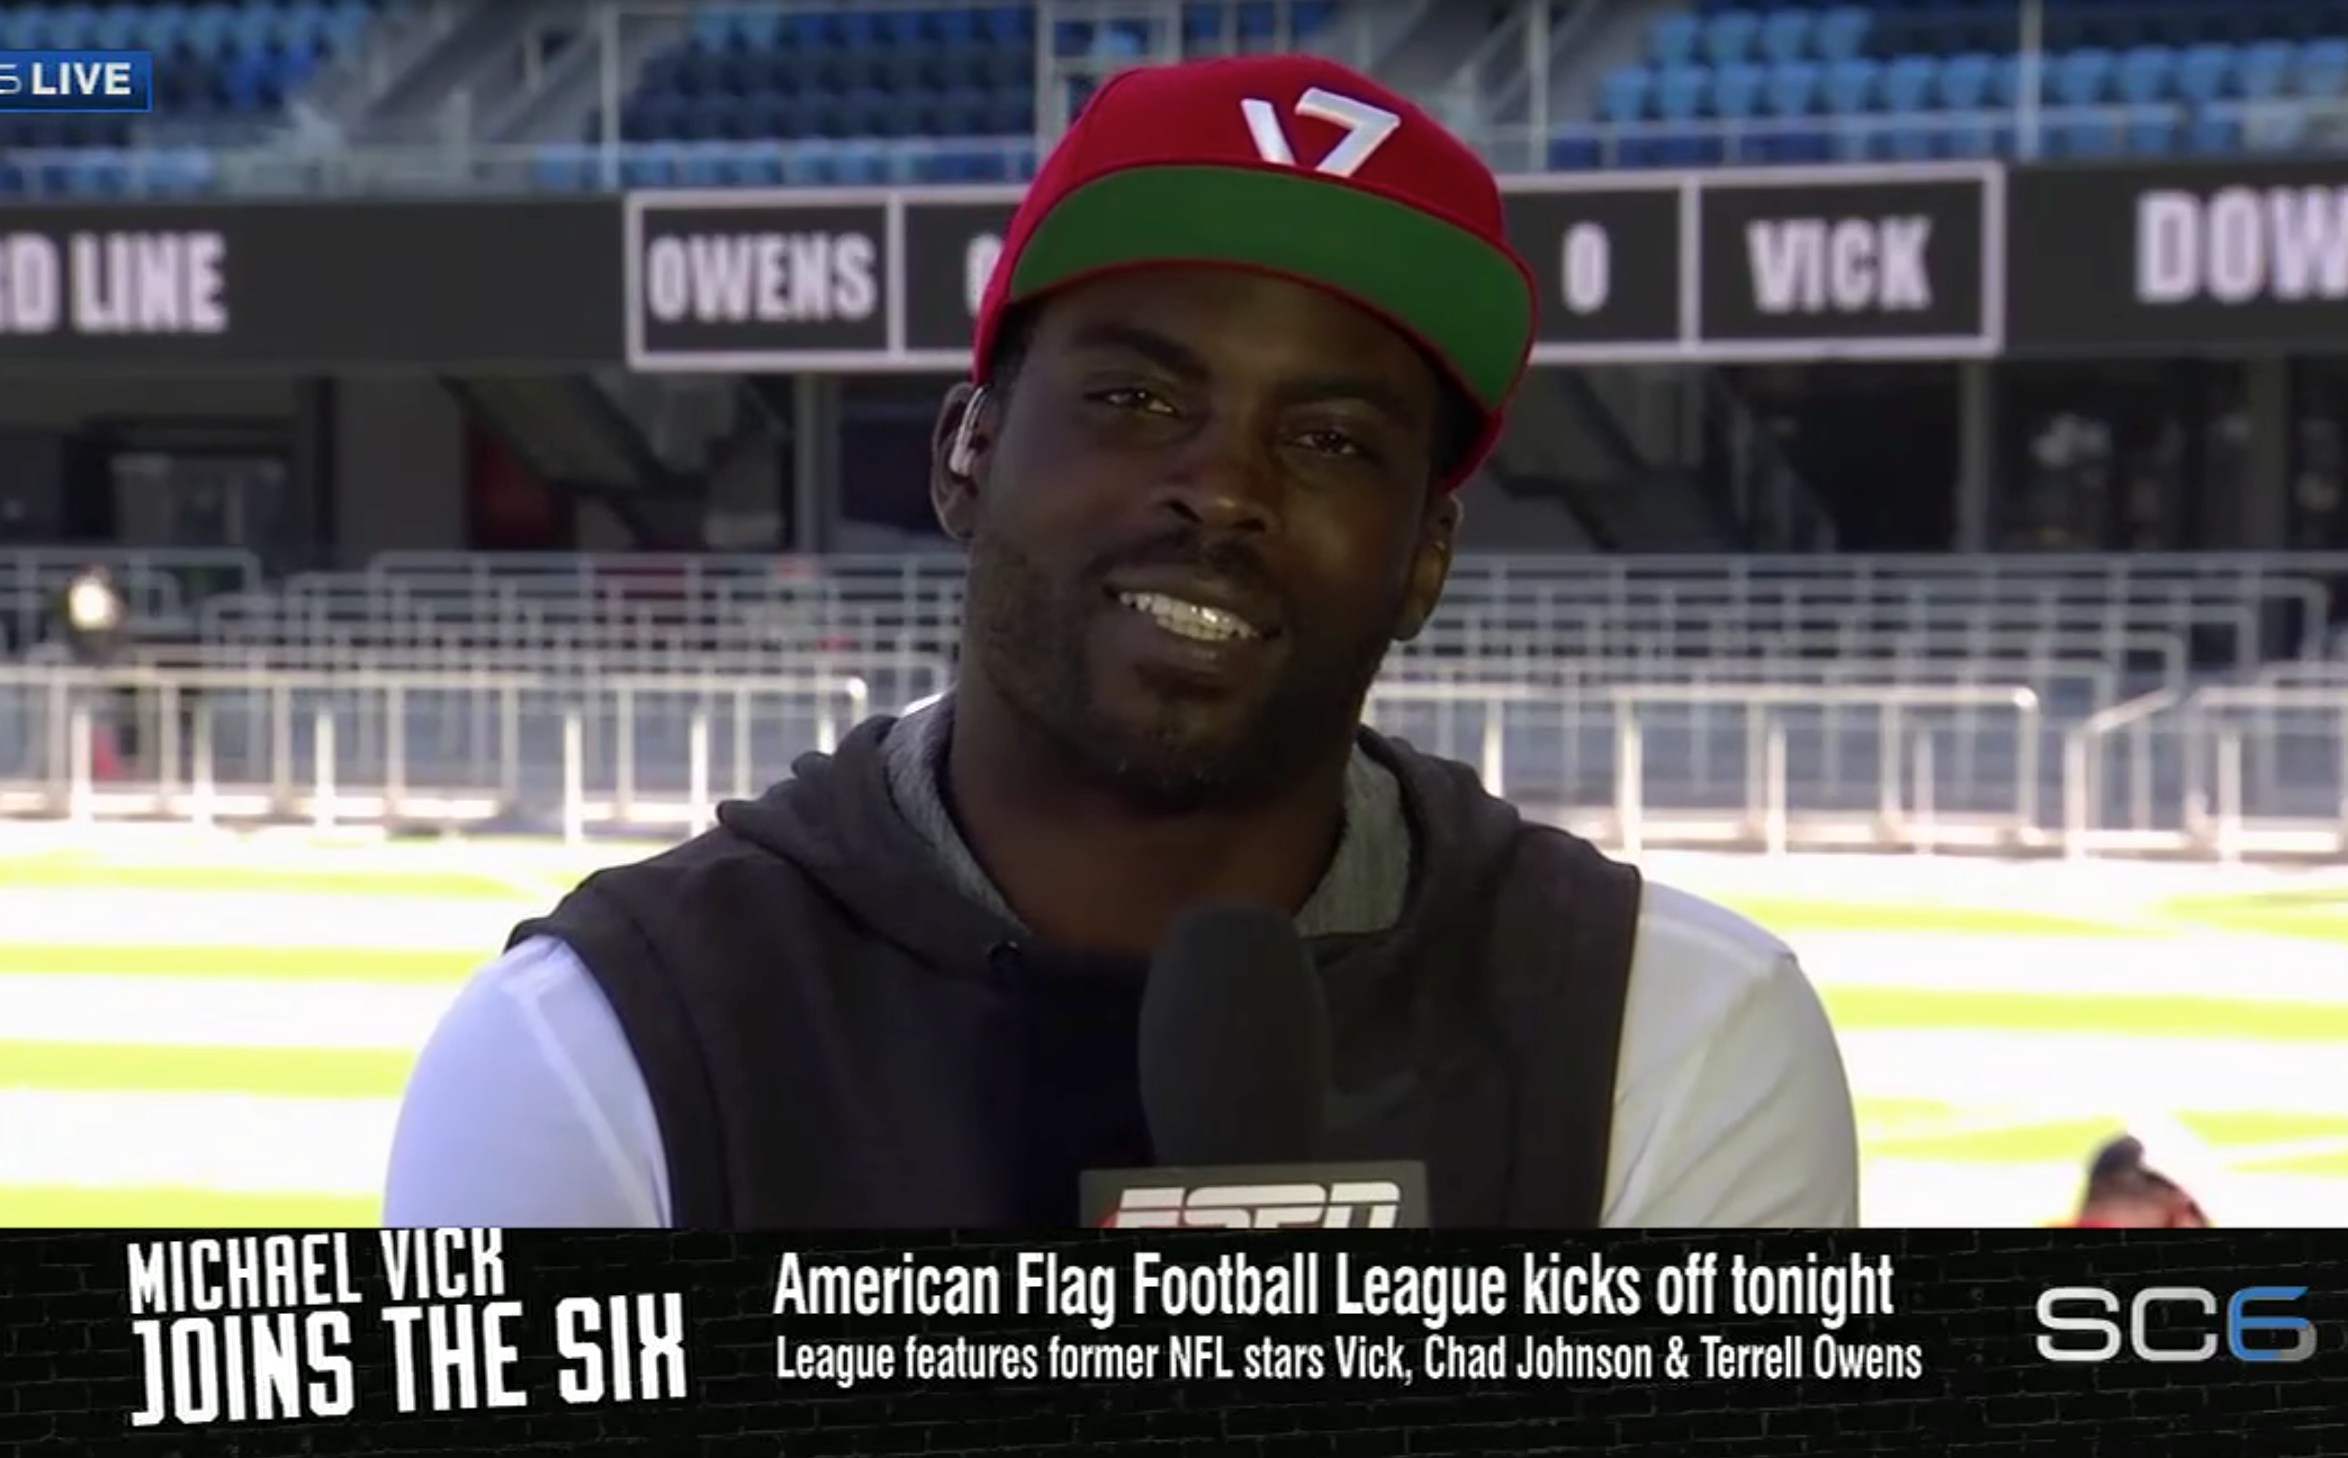 Michael Vick Joins The Six